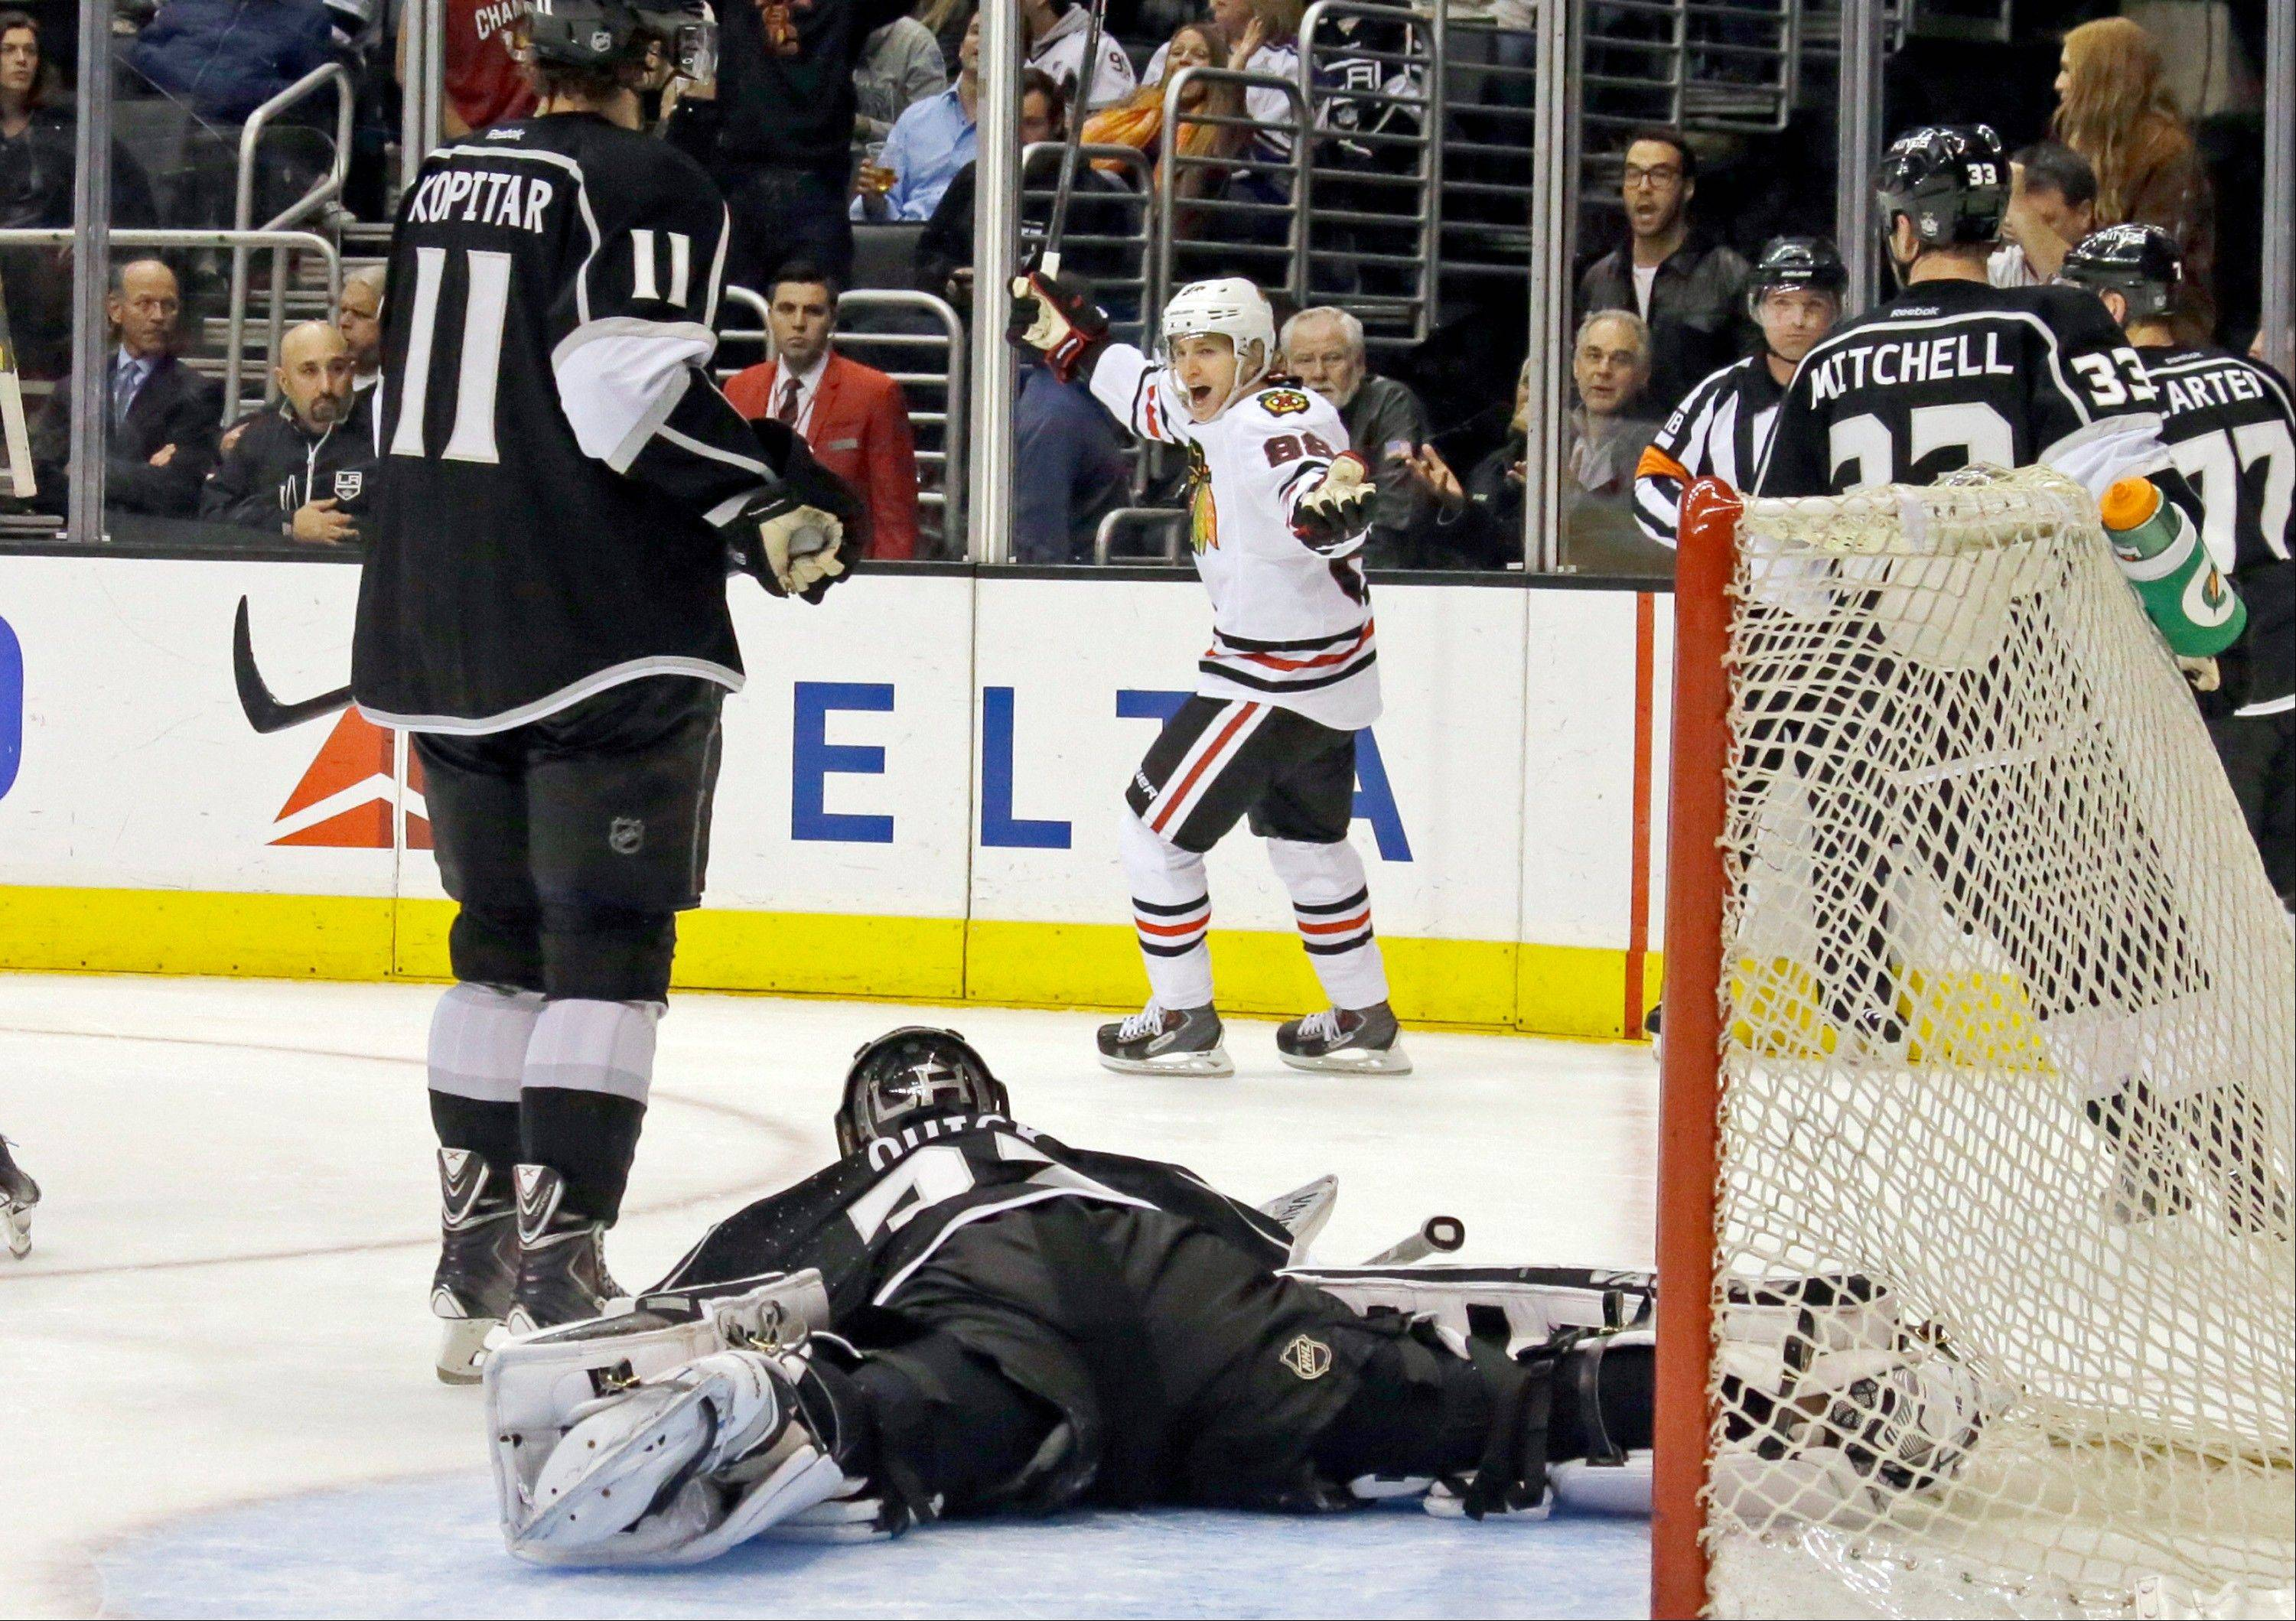 Blackhawks right winger Patrick Kane (88) scored twice against Los Angeles Kings goalie Jonathan Quick (32) on Monday. After each goal, Kane raised an arm and pointed to the heavens to honor his grandfather, who had passed away.